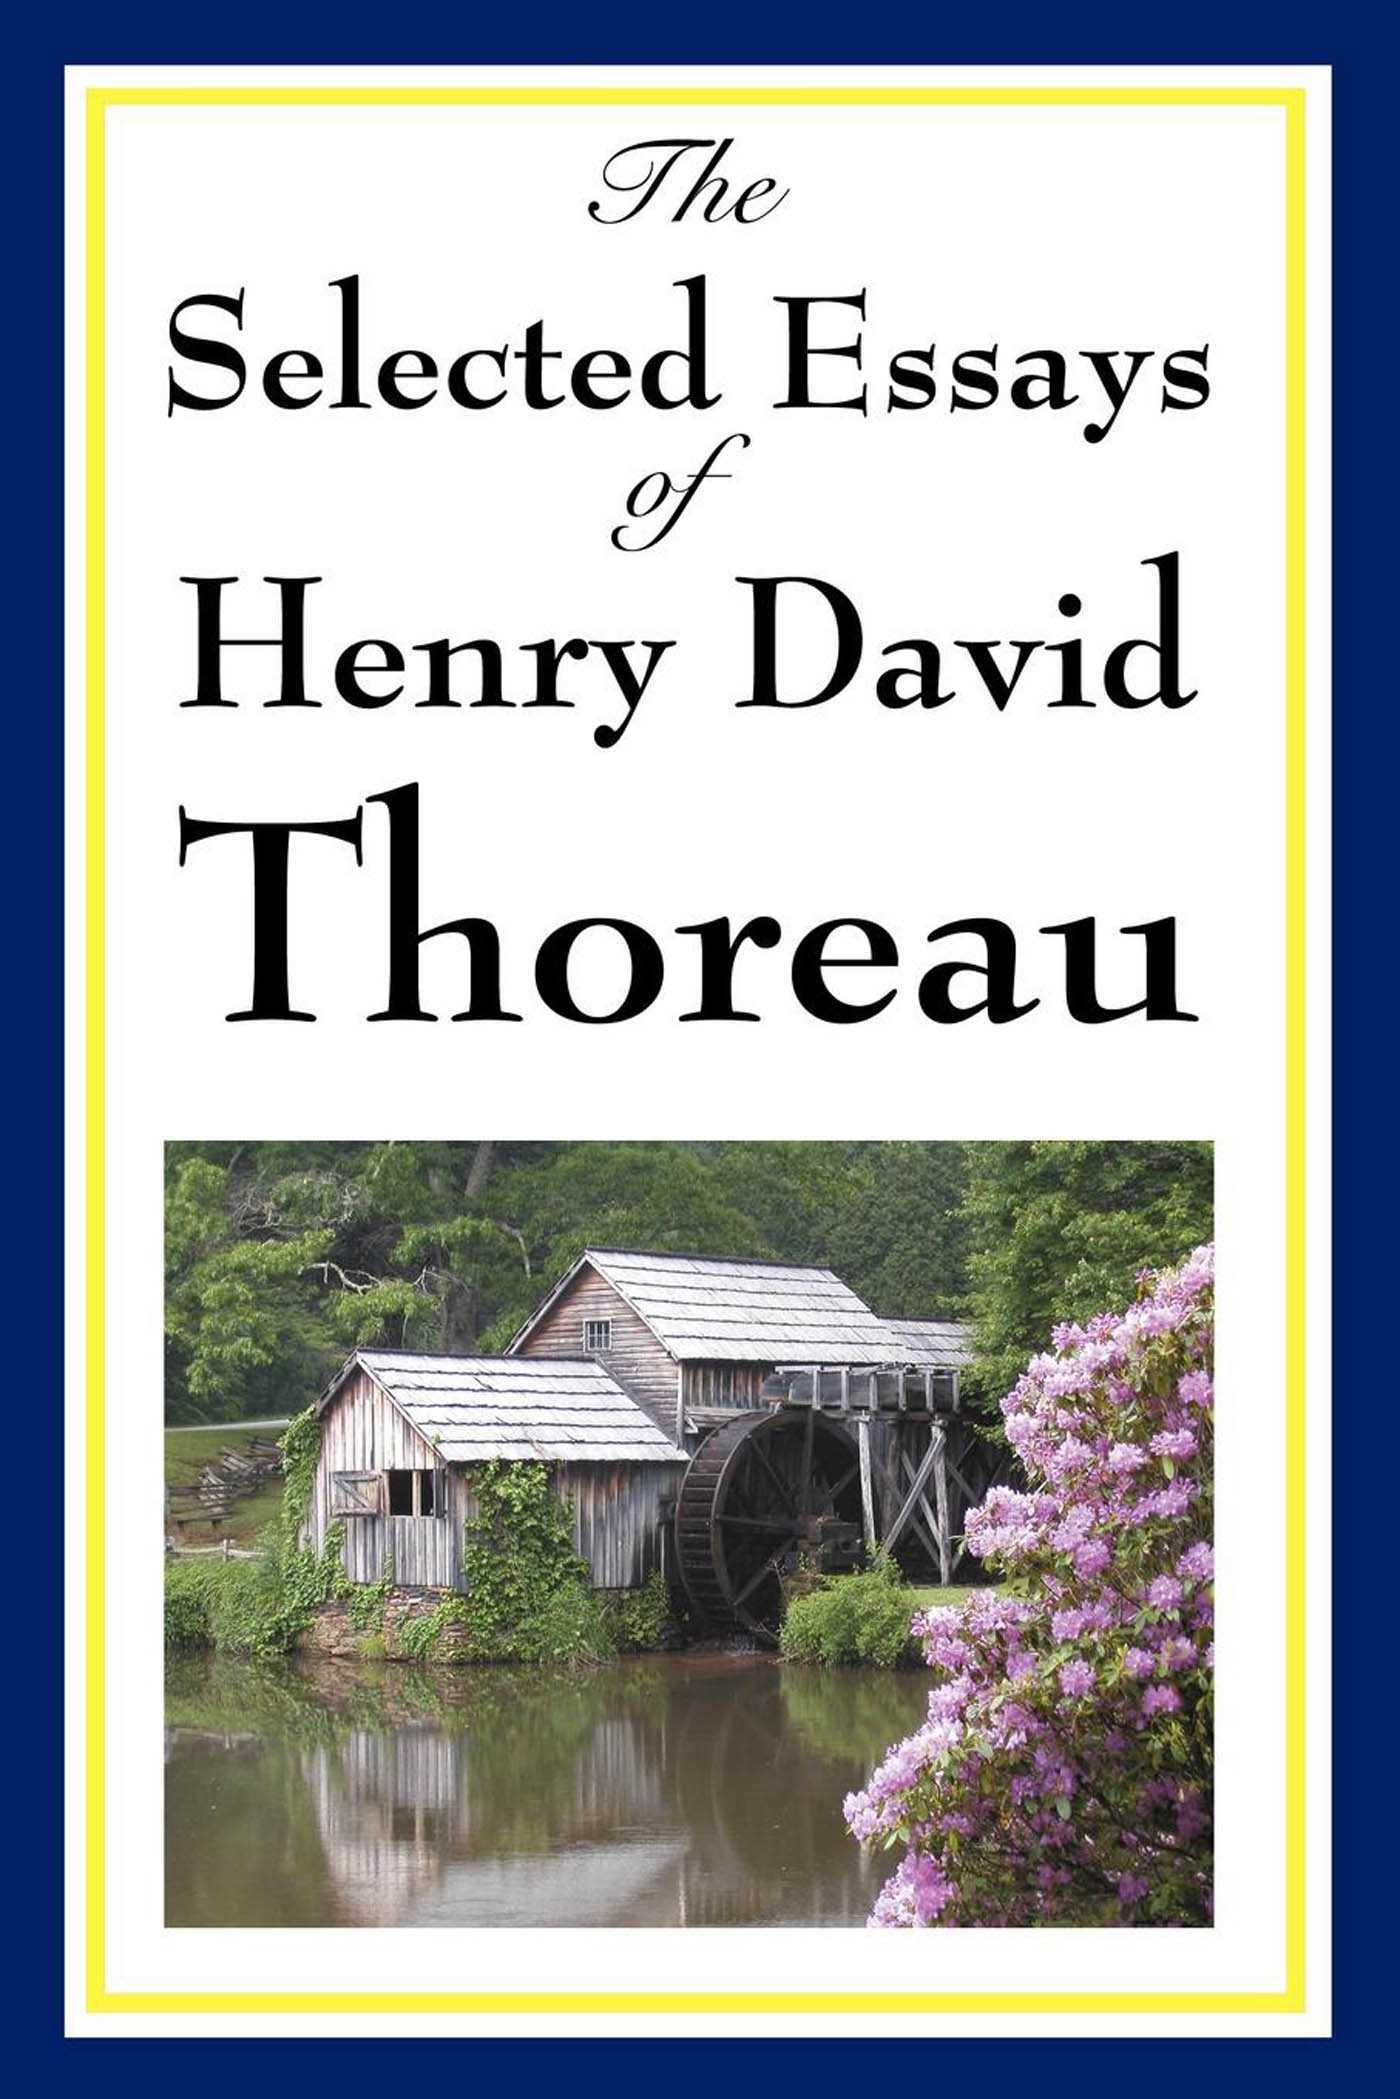 a biography of henry david thoreau an american transcendentalist author Henry david thoreau biography read biographical information including facts, poetic works, awards, and the life story and history of henry david thoreau this short biogrpahy feature on henry david thoreau will help you learn about one of the best famous poet poets of all-time david henry thoreau .